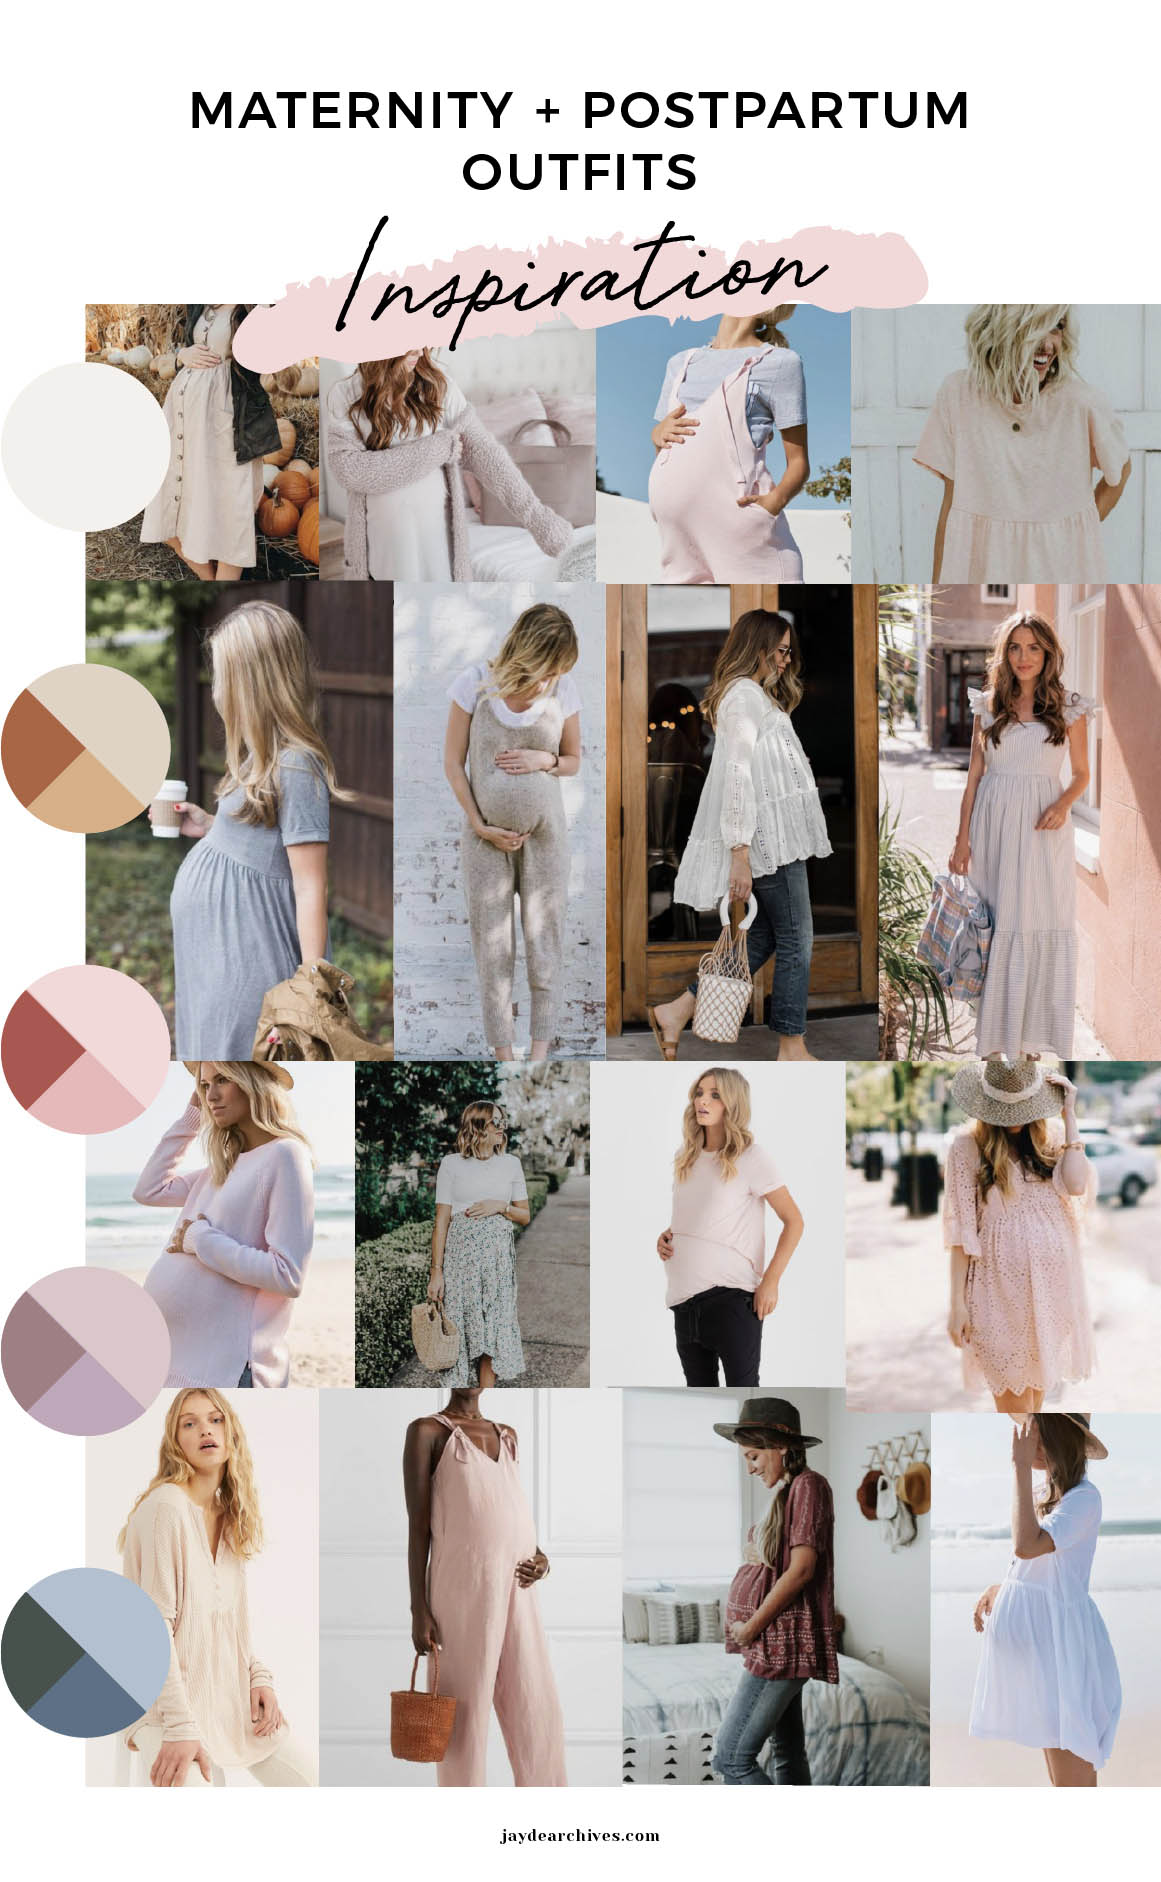 Maternity-Postpartum Capsule Wardrobe Mood Board